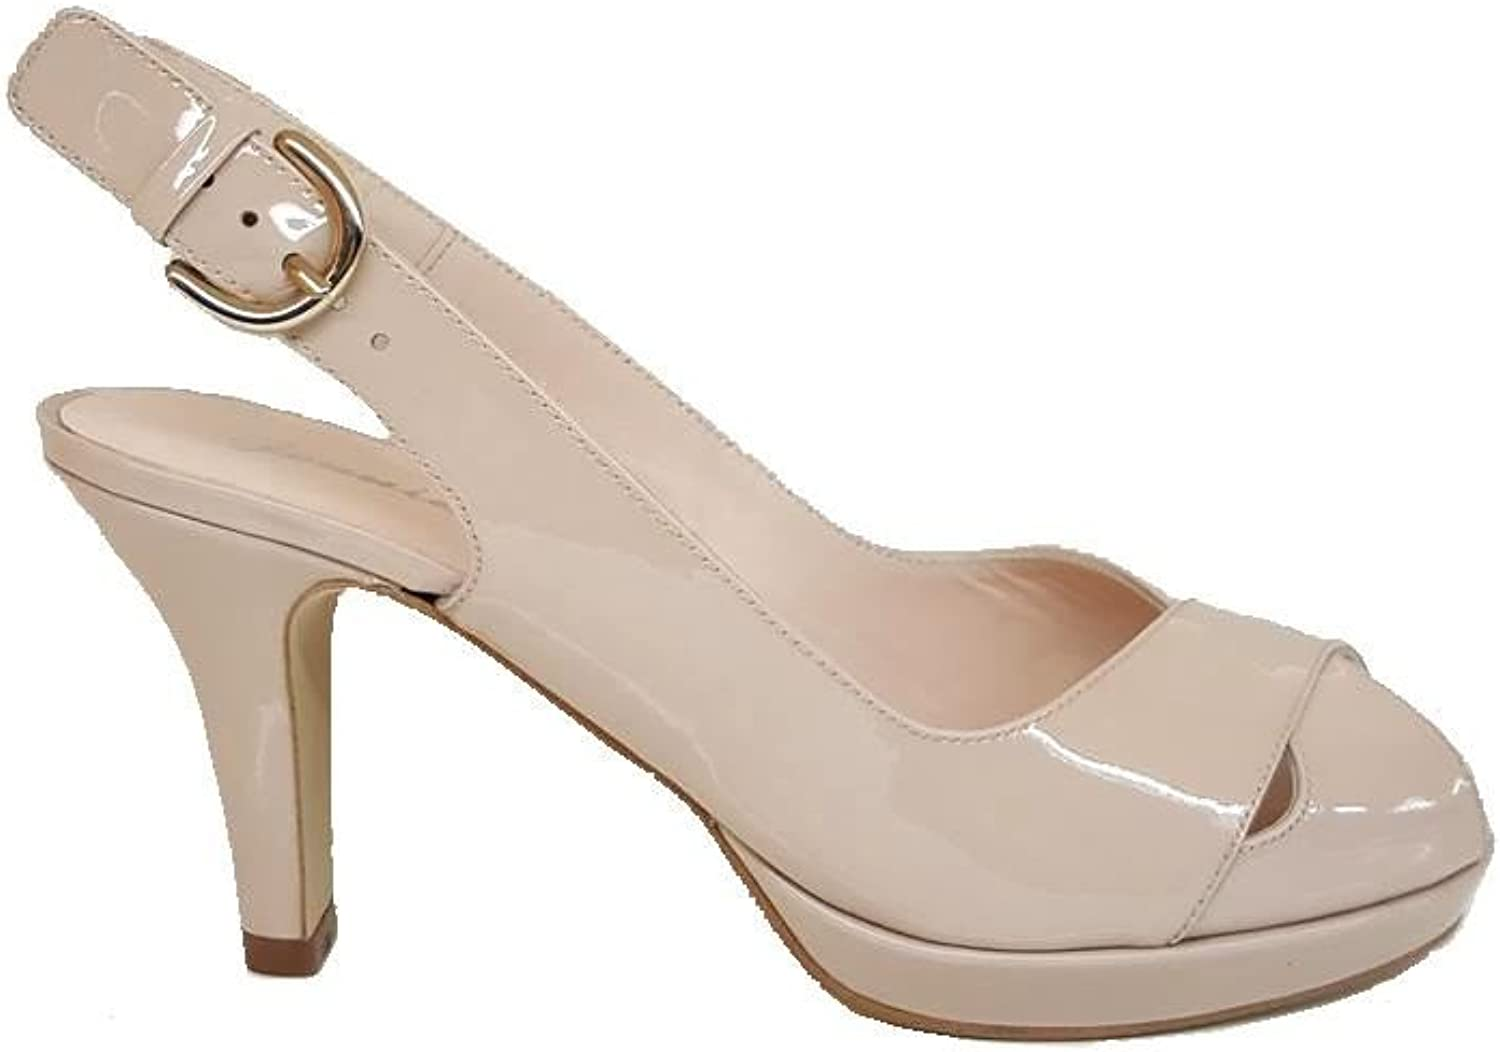 GENNIA ICADENASIN. - Women Leather Sandals Open Toe and Slingback with Platform